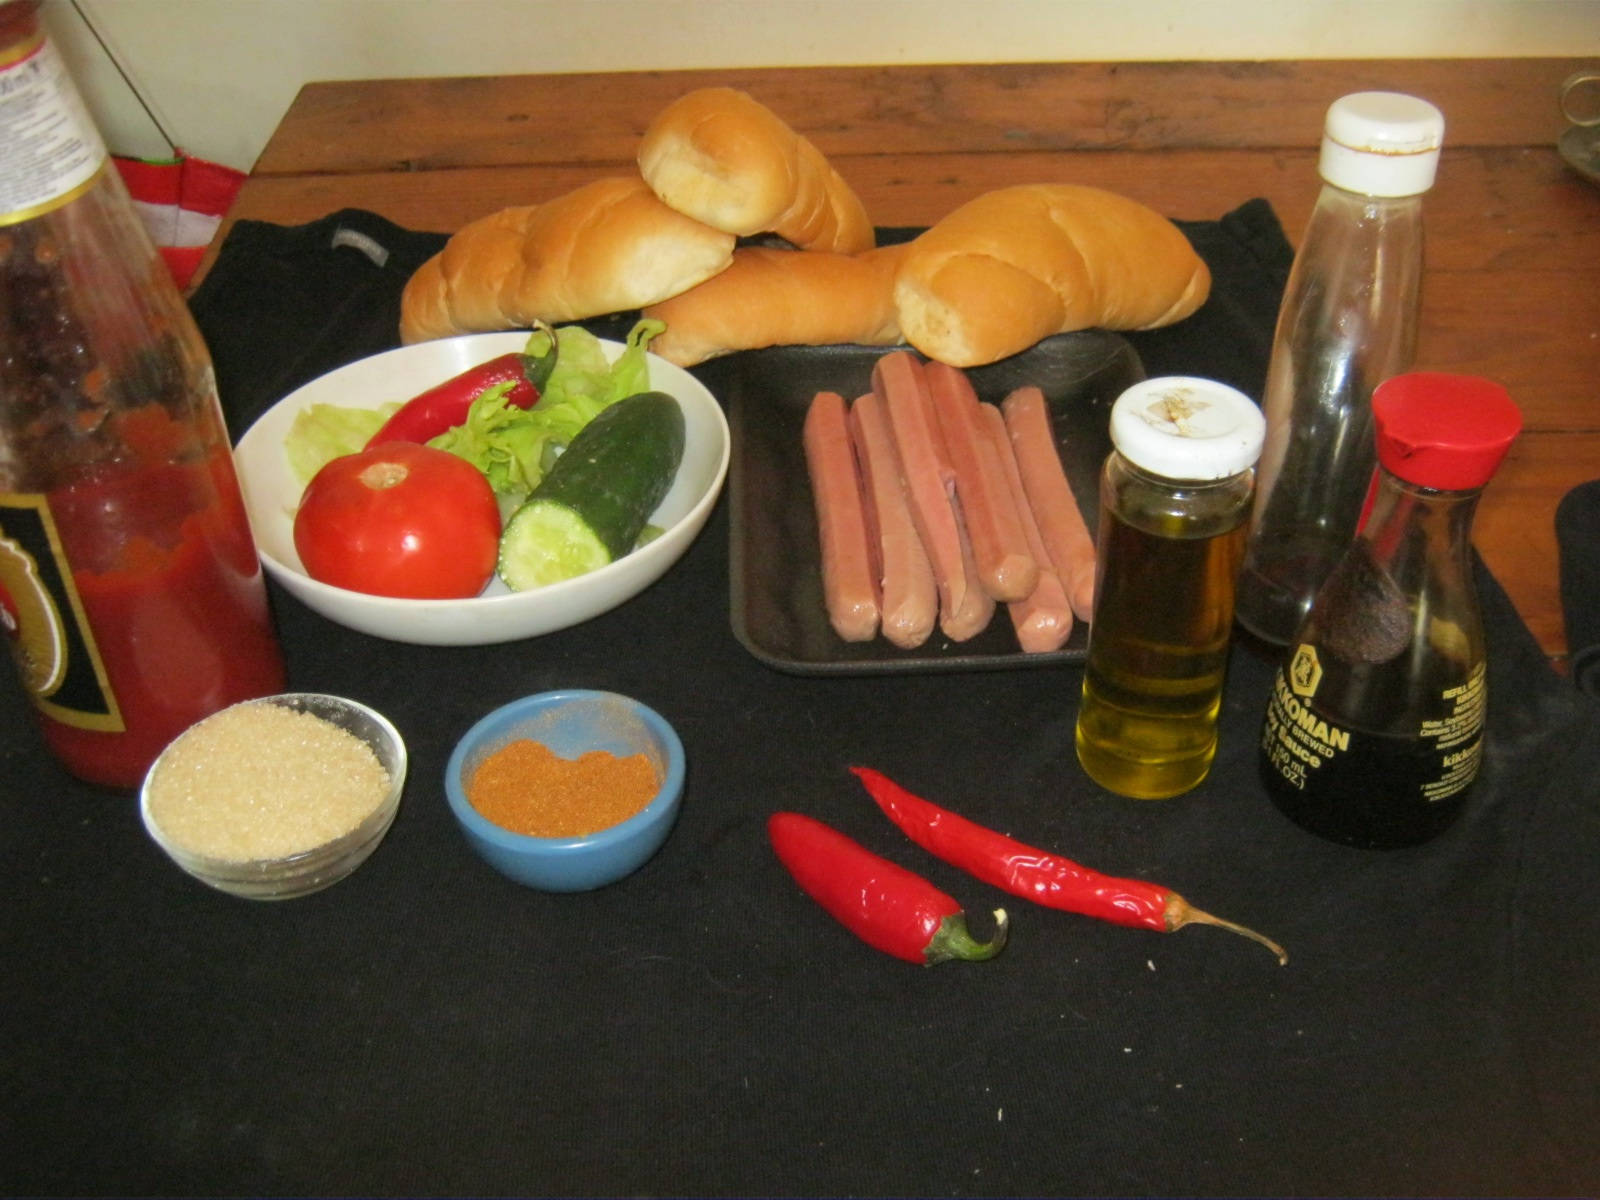 Ingredients  for  Quick Hot Dog